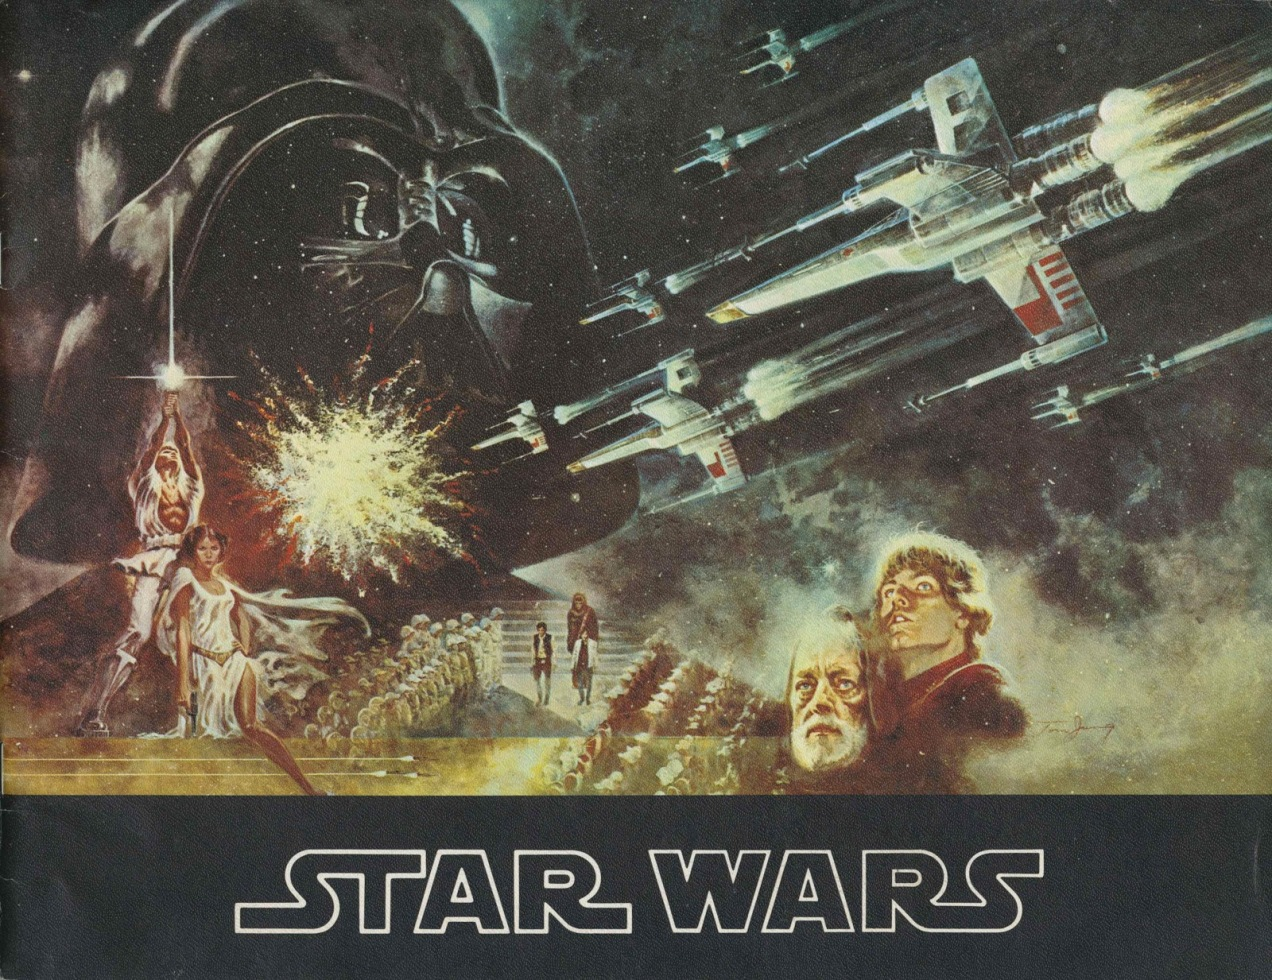 Star Wars souvenir program 1977